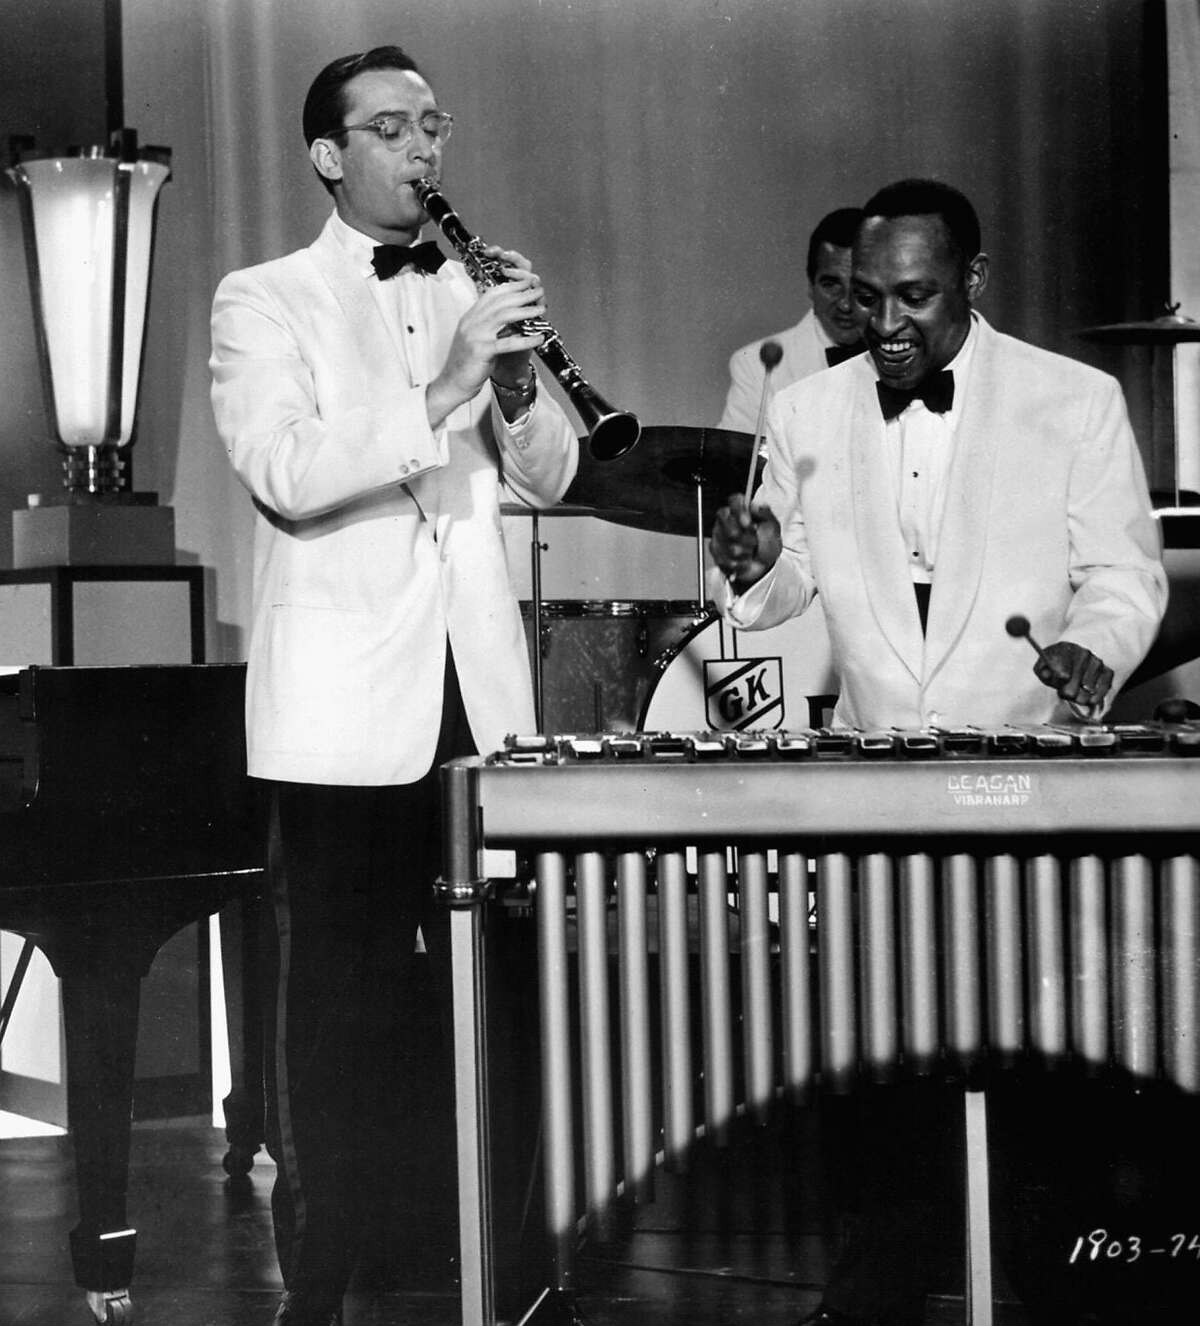 """Legendary comedian/actor/musician Steve Allen, (L), shown in the lead role in this file photo from the 1956 film """"The Benny Goodman Story"""", died October 31, 2000 of a possible heart attack. Allen, who was 78, was also the first host of """"The Tonight Show"""", and wrote over 4,000 songs. Musican Lionel Hampton is at right. REUTERS/File Photo"""